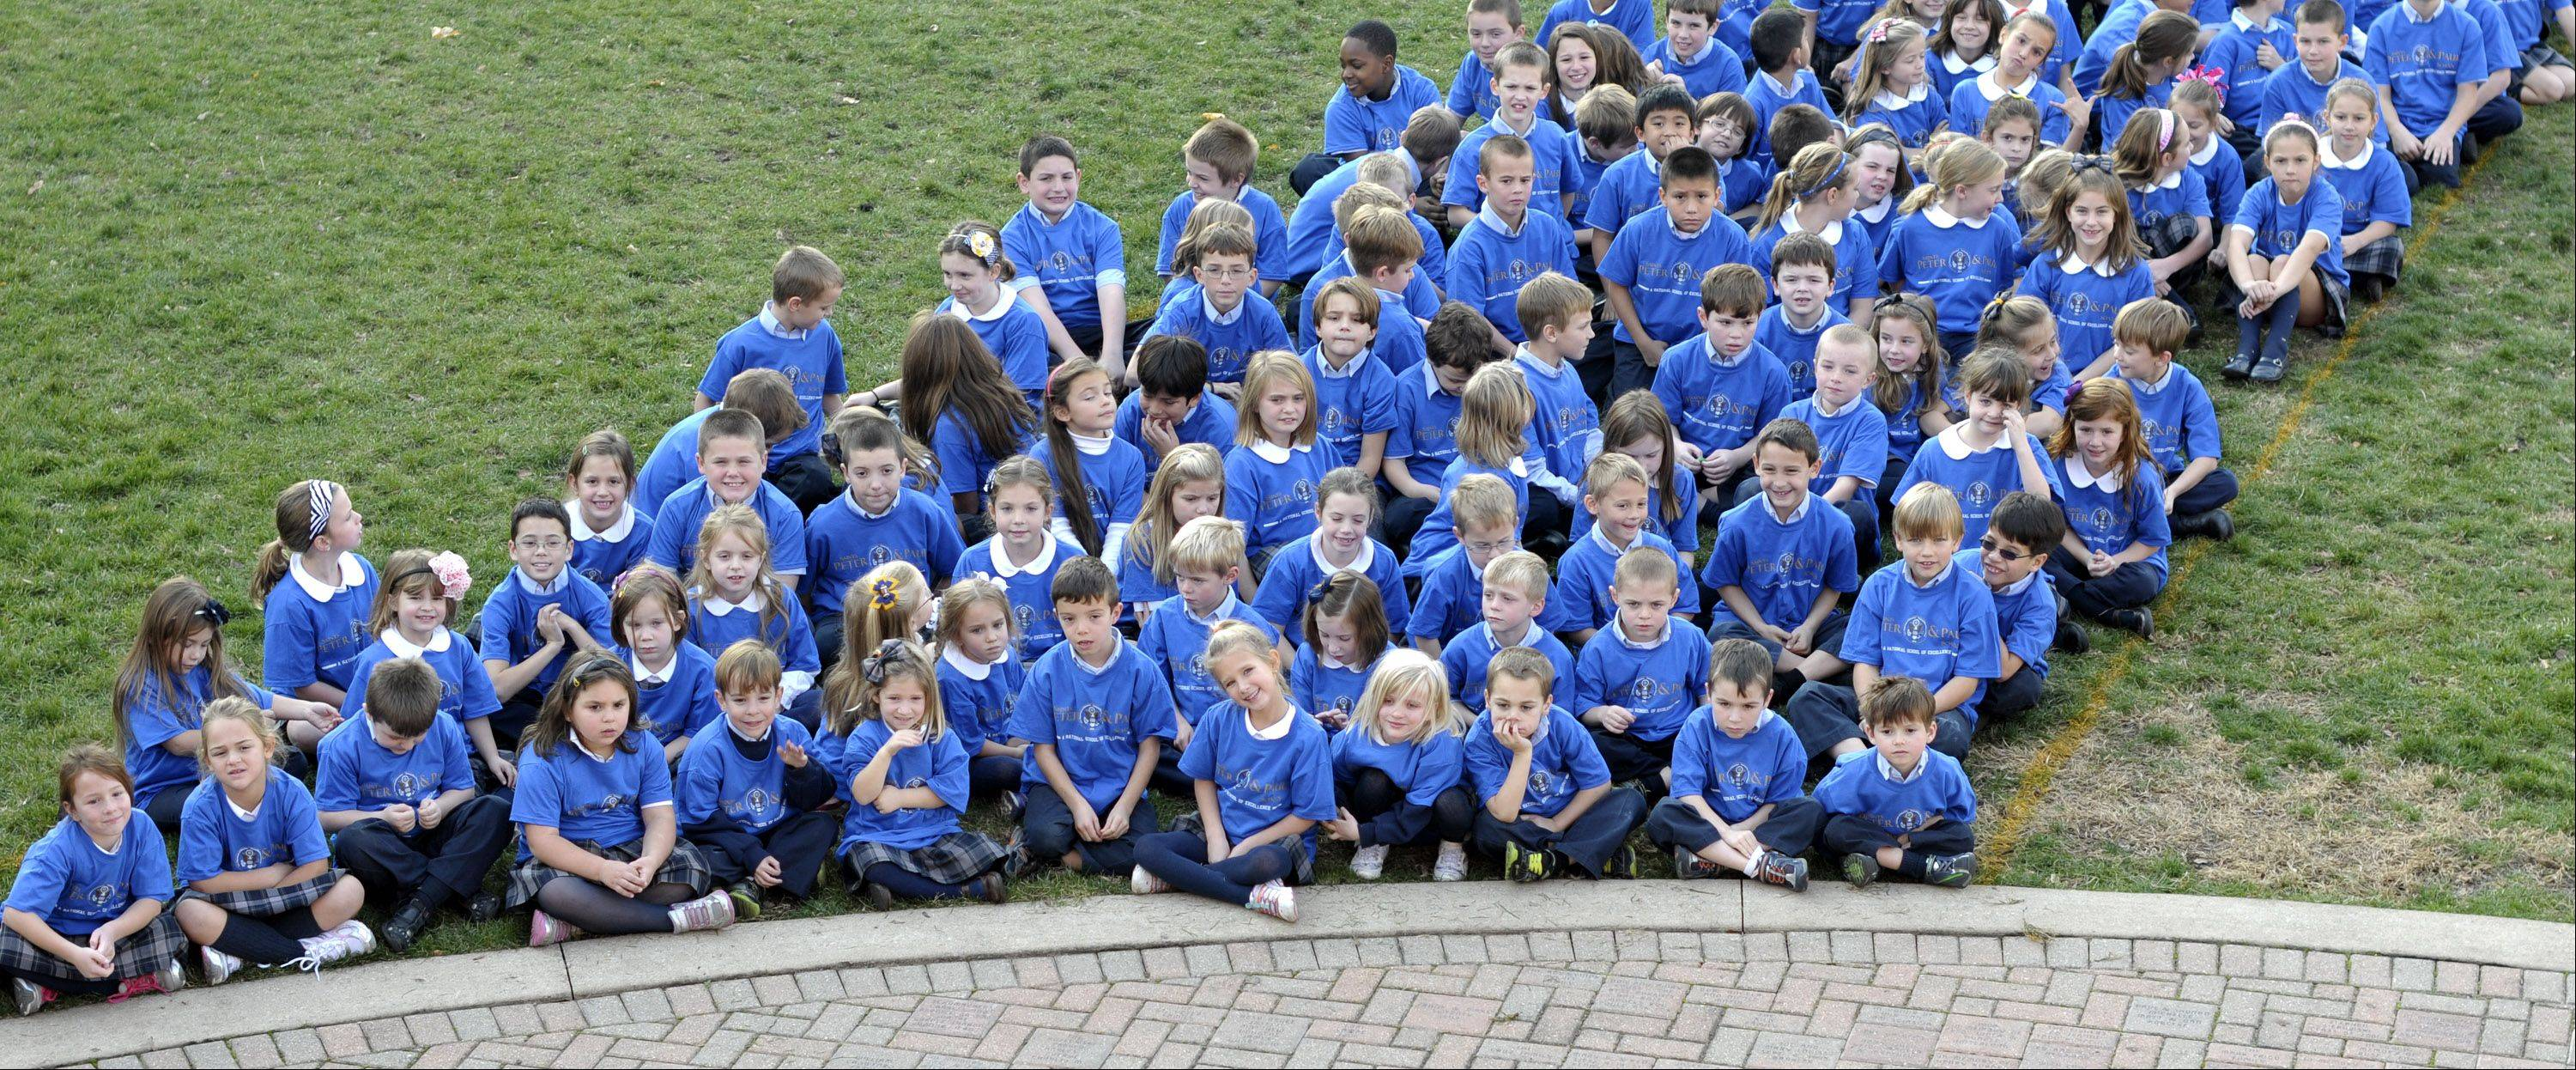 Ss. Peter and Paul School students formed a sea of blue Friday, all wearing special T-shirts commemorating the school's Blue Ribbon School status.